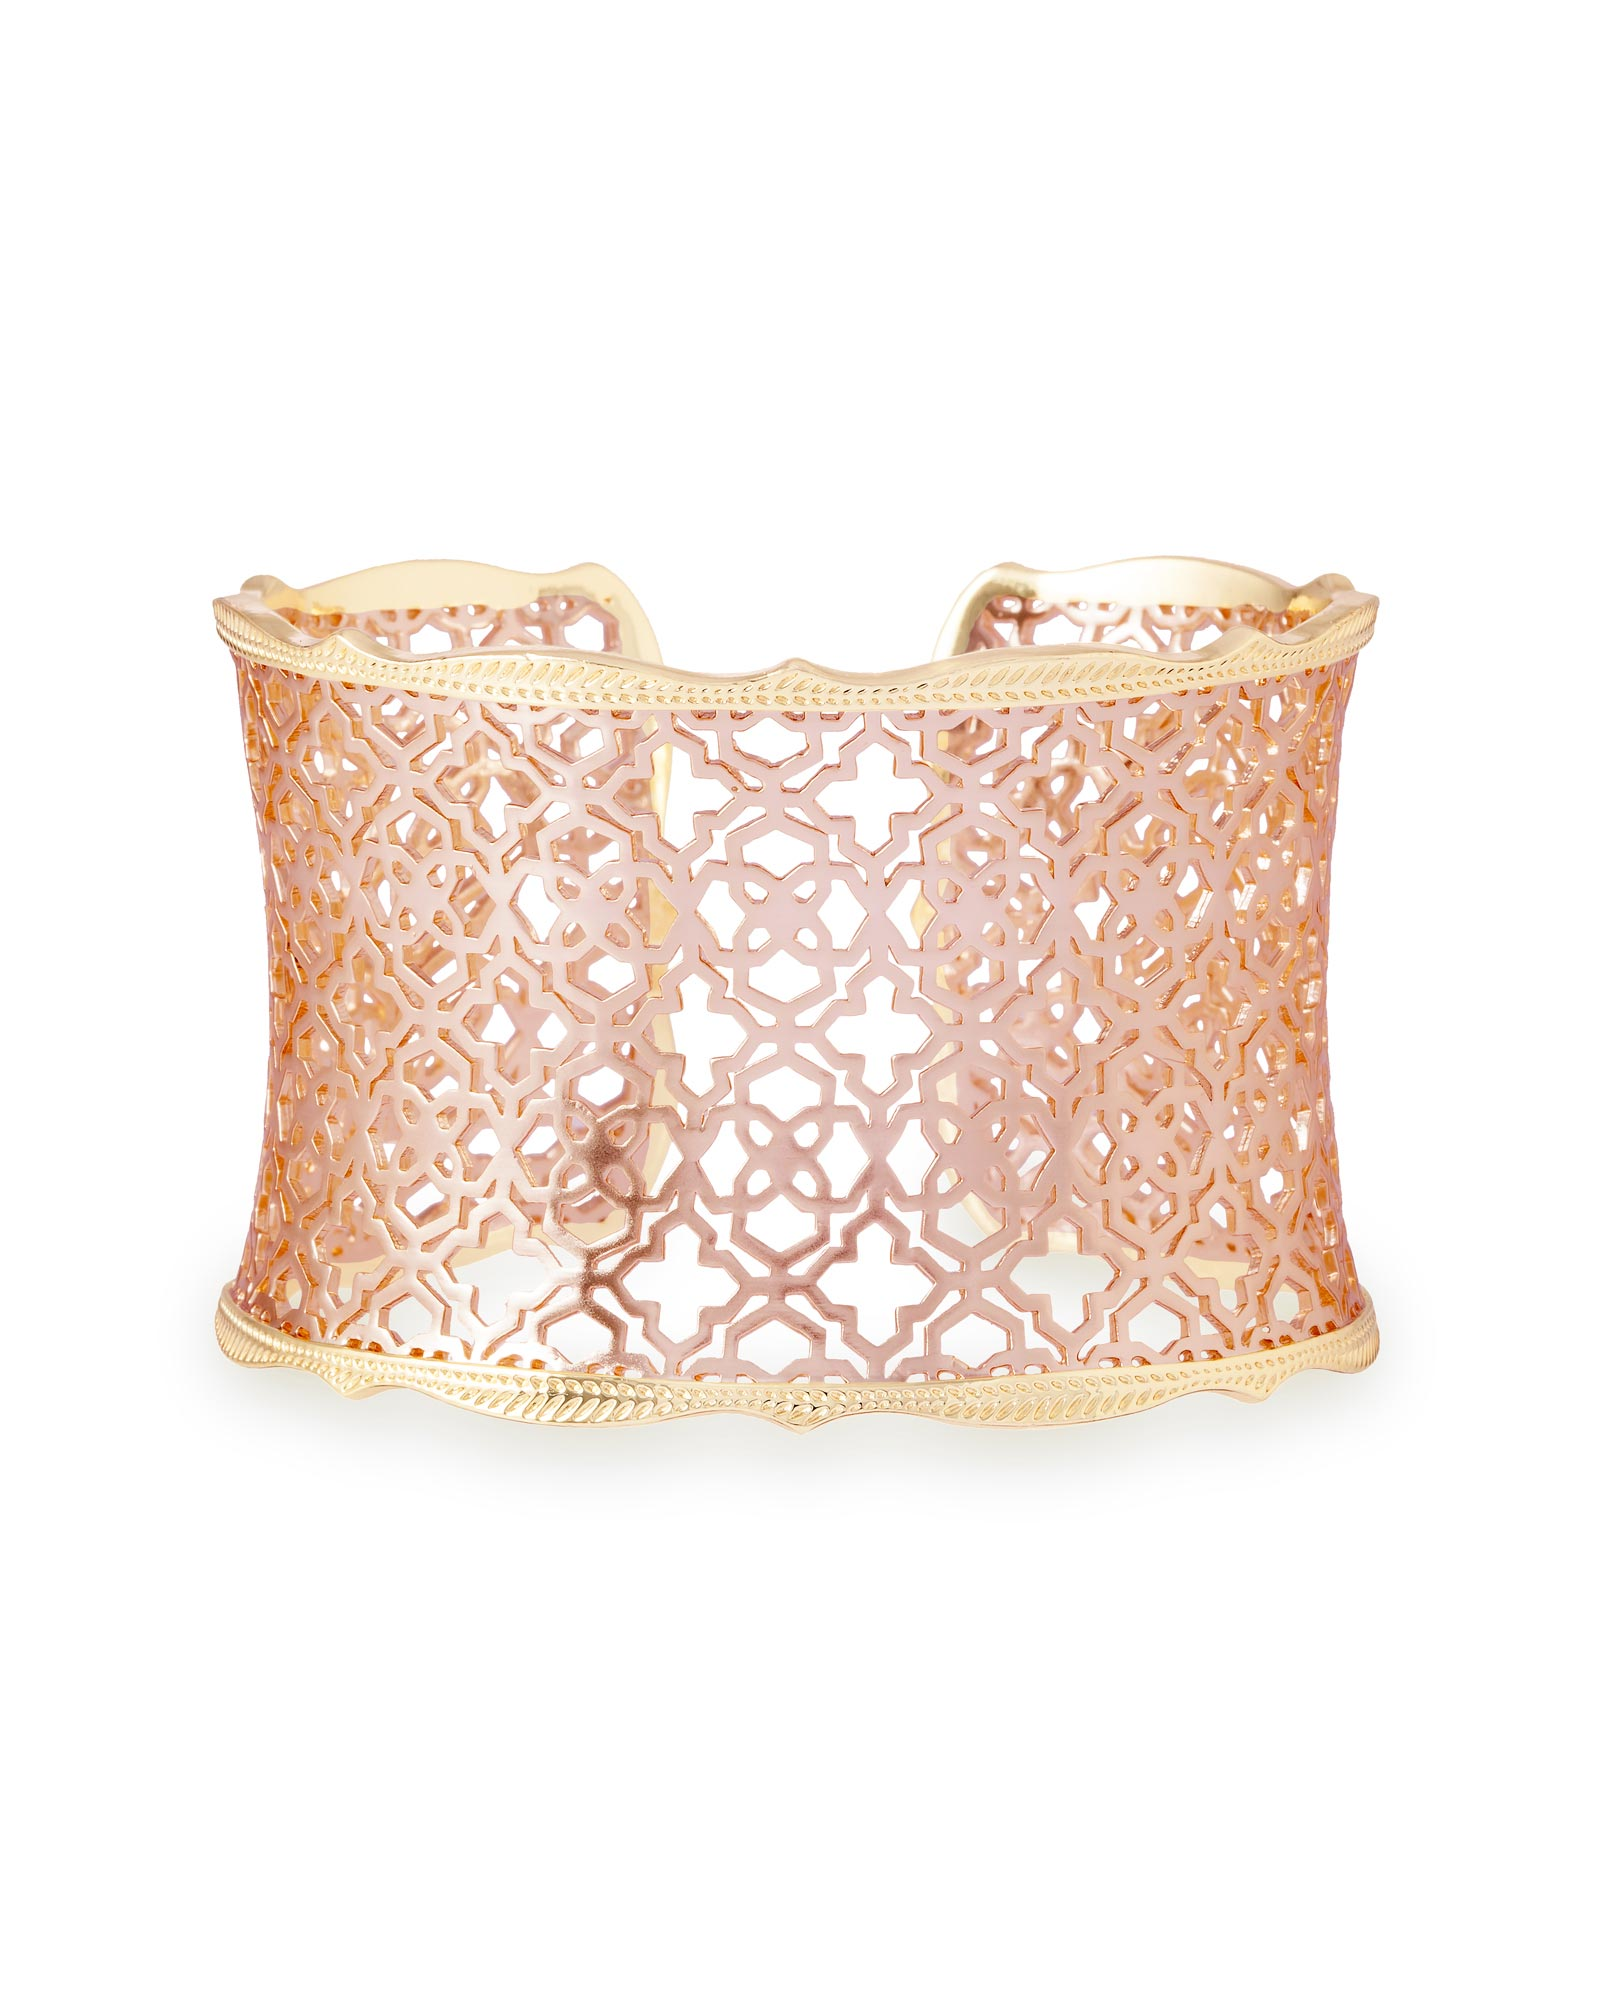 Kendra Scott Candice Gold Bracelet In Rose Gold